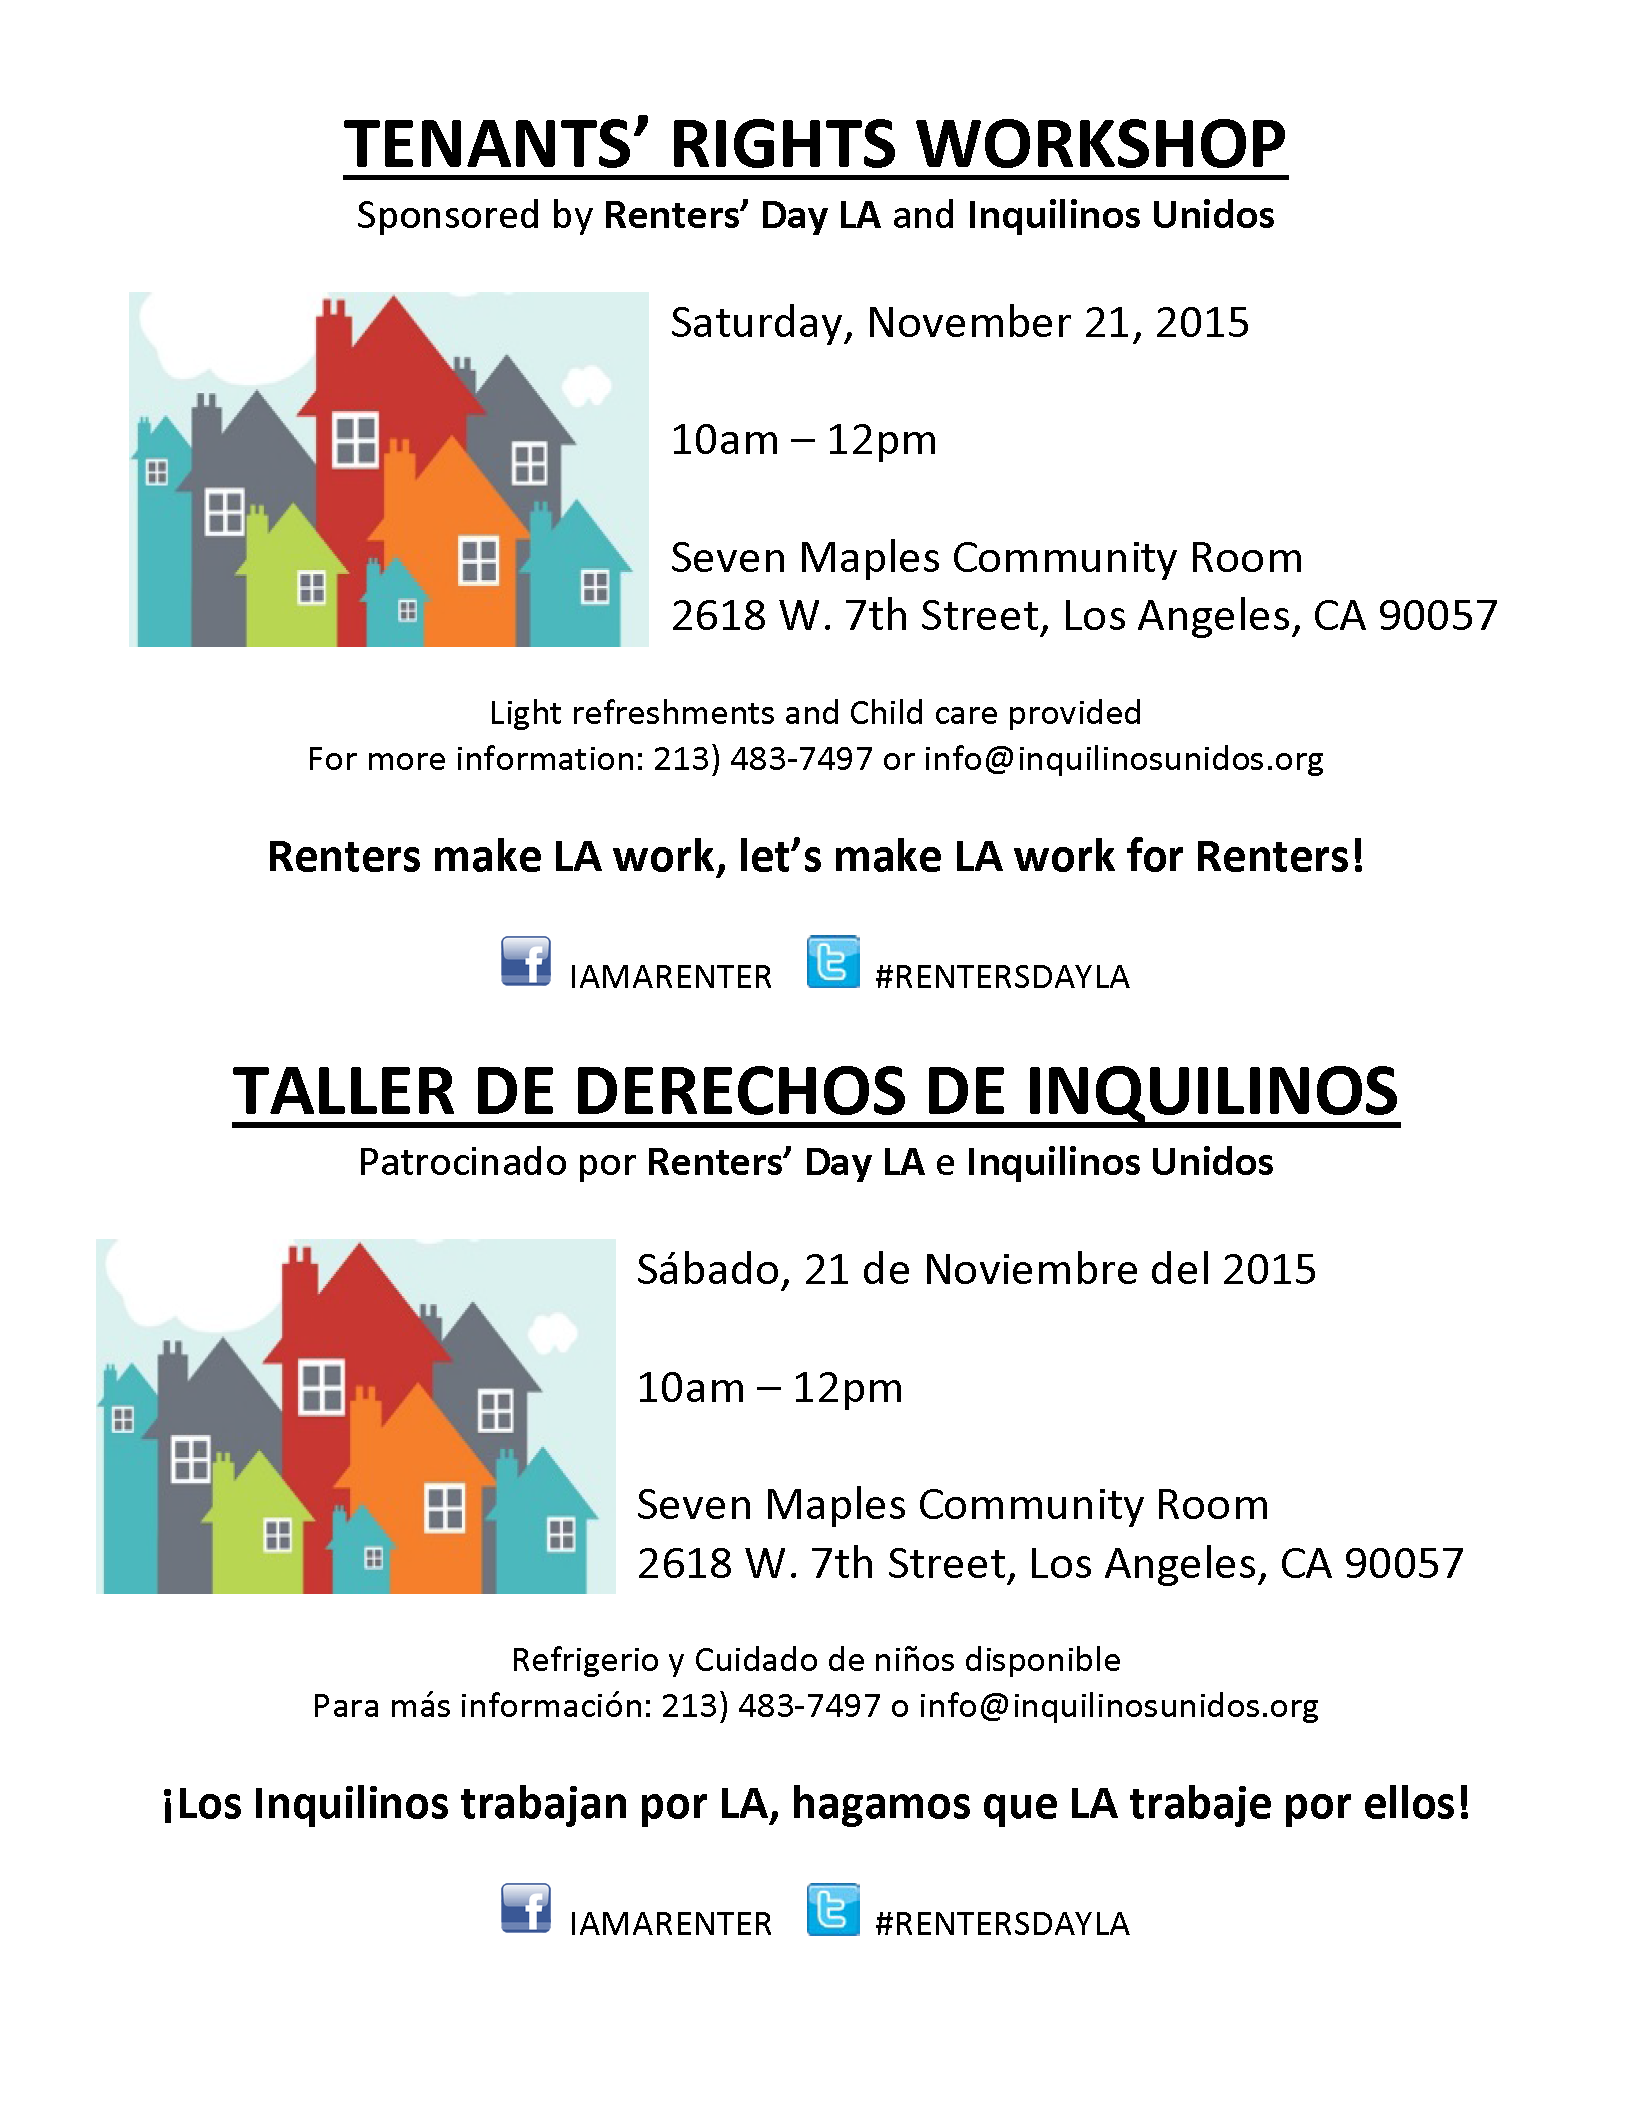 Tenants_Rights_Workshop_11.21.15.png